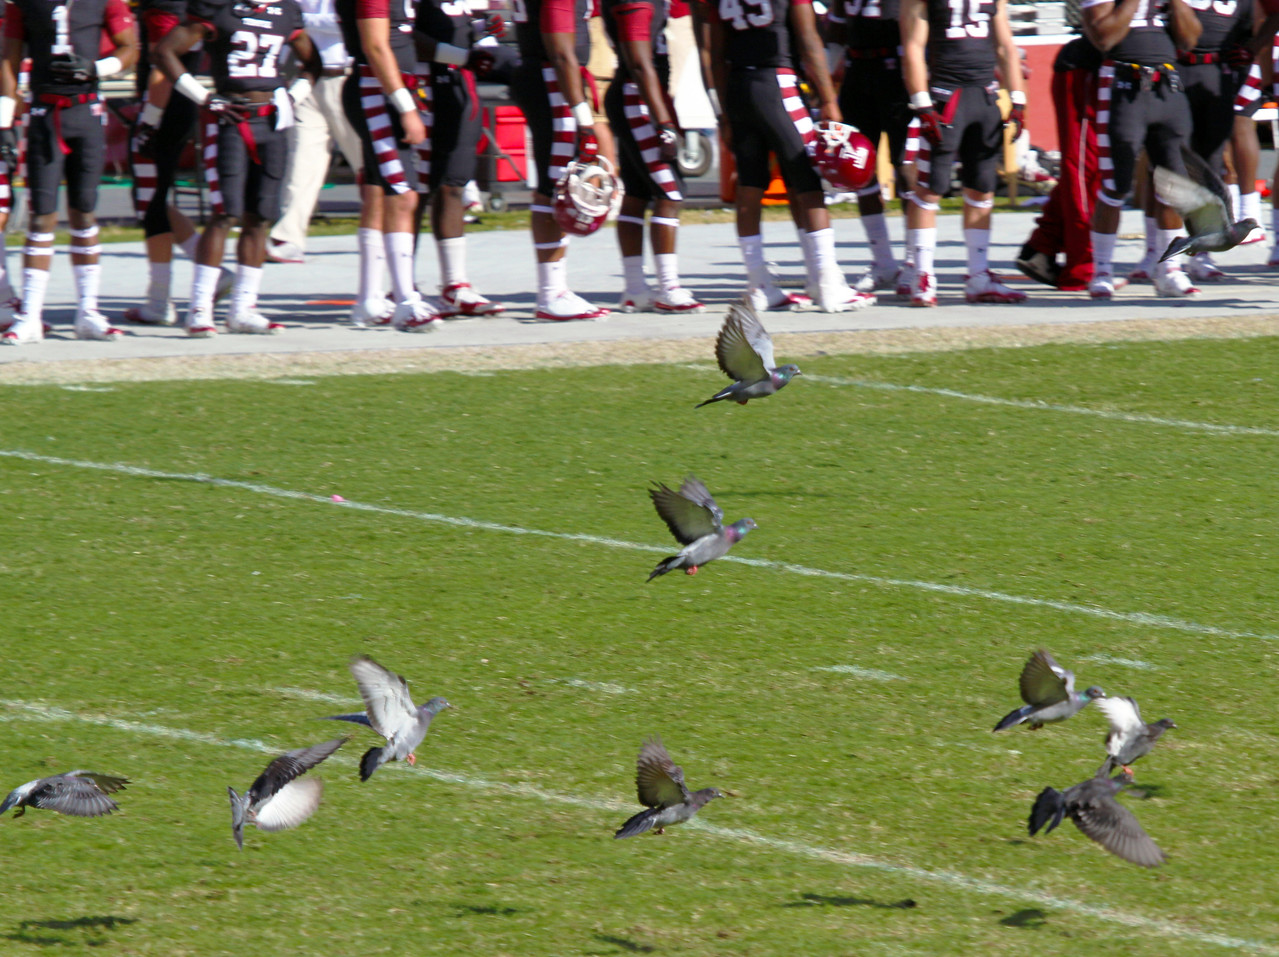 Pigeons played their own game throughout the entire football game